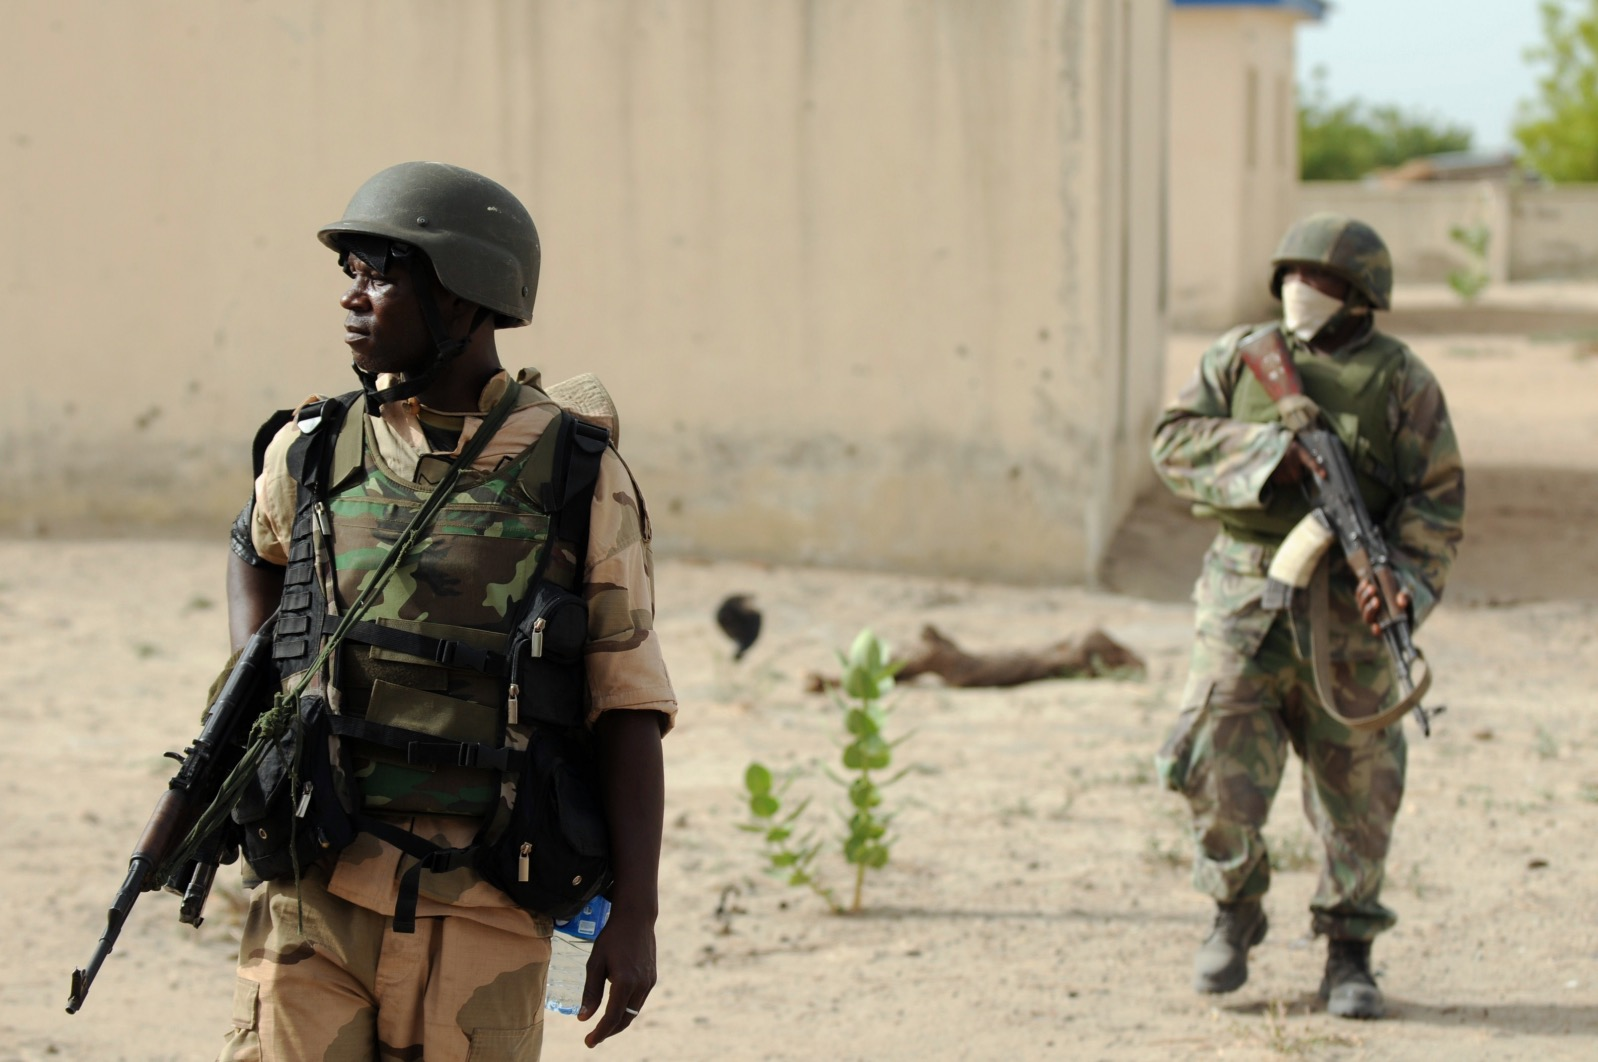 B'Haram Factional Leader Wounded